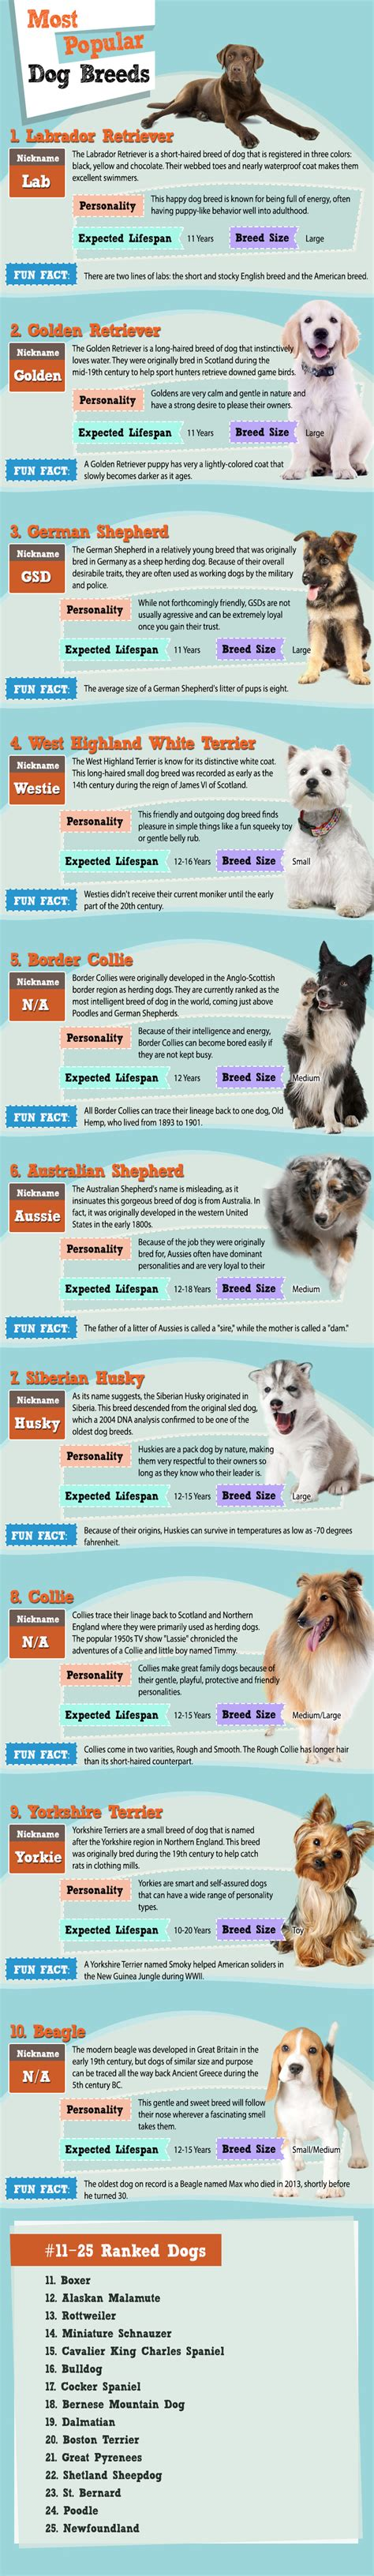 what is the most popular breed the most popular breeds of 2015